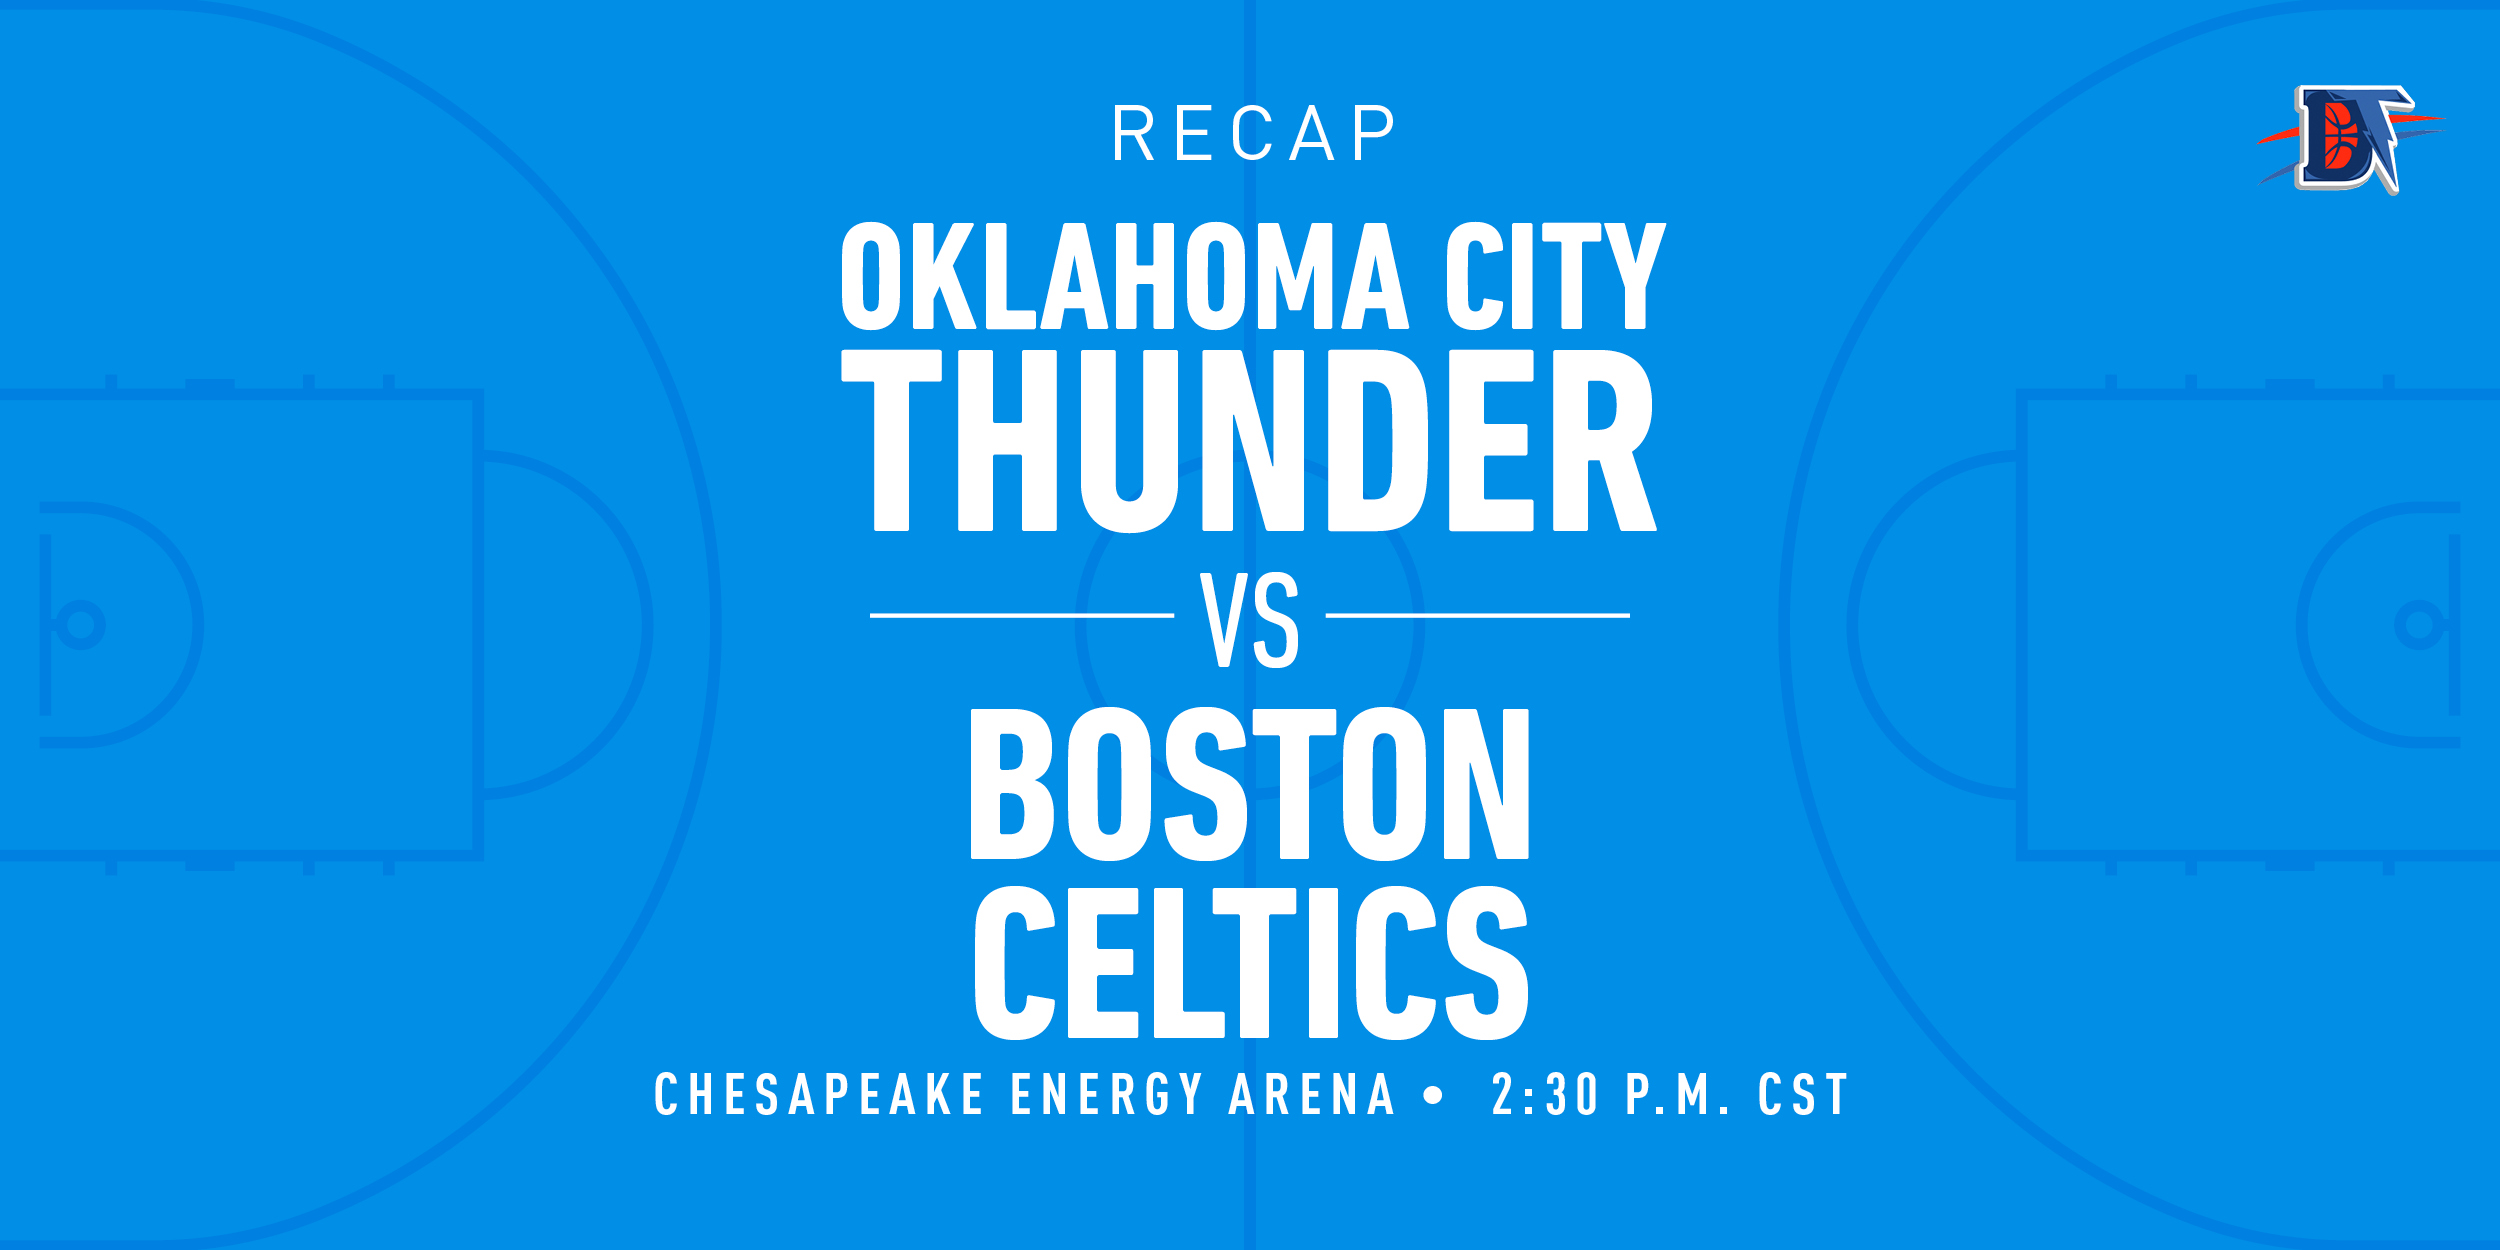 Game 53 Recap: Celtics (37-15) def. Thunder (32-21) 112-111